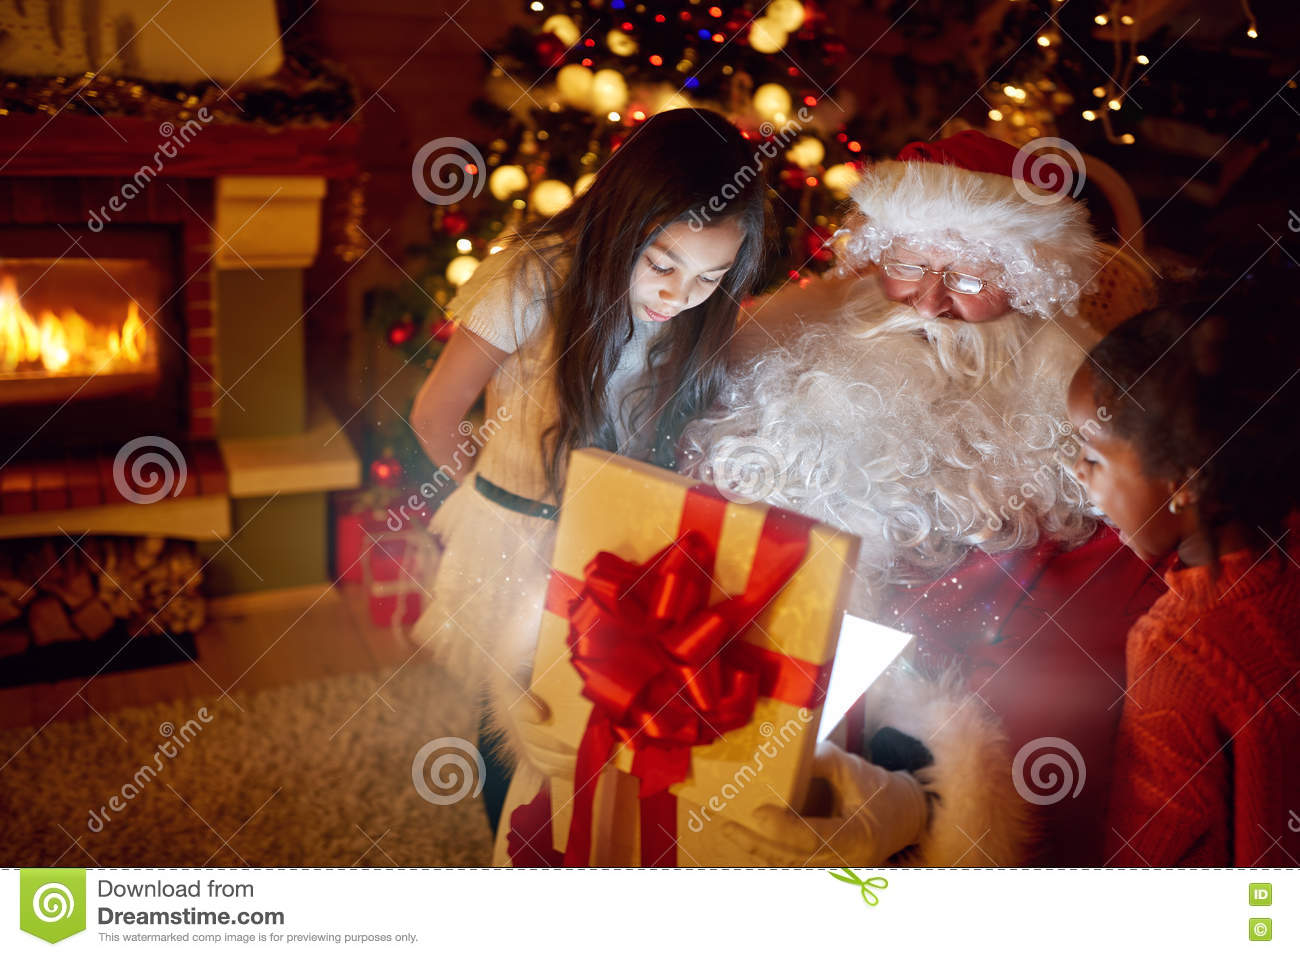 Real Santa Claus with children opening present with magical eff